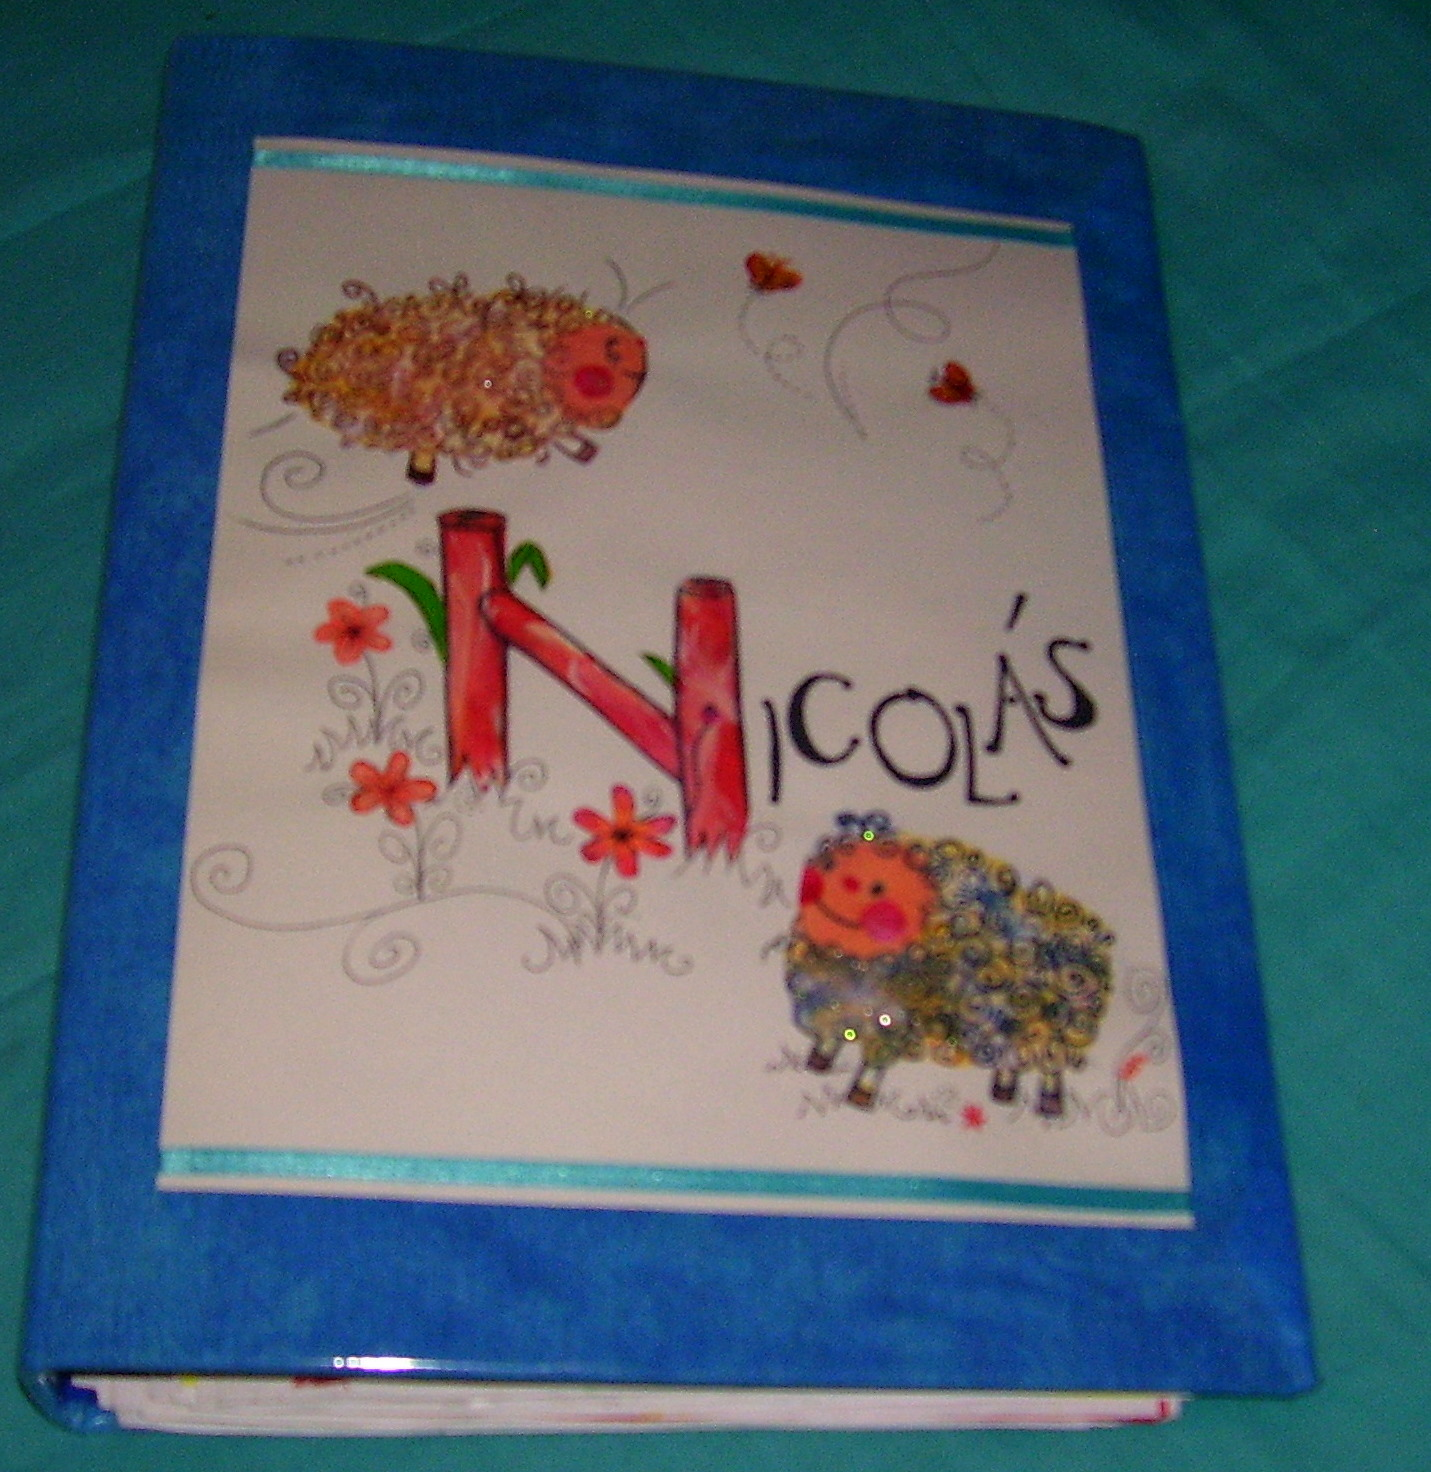 Carpeta Decorada Para Nino De Jardin De Infantes Recrear